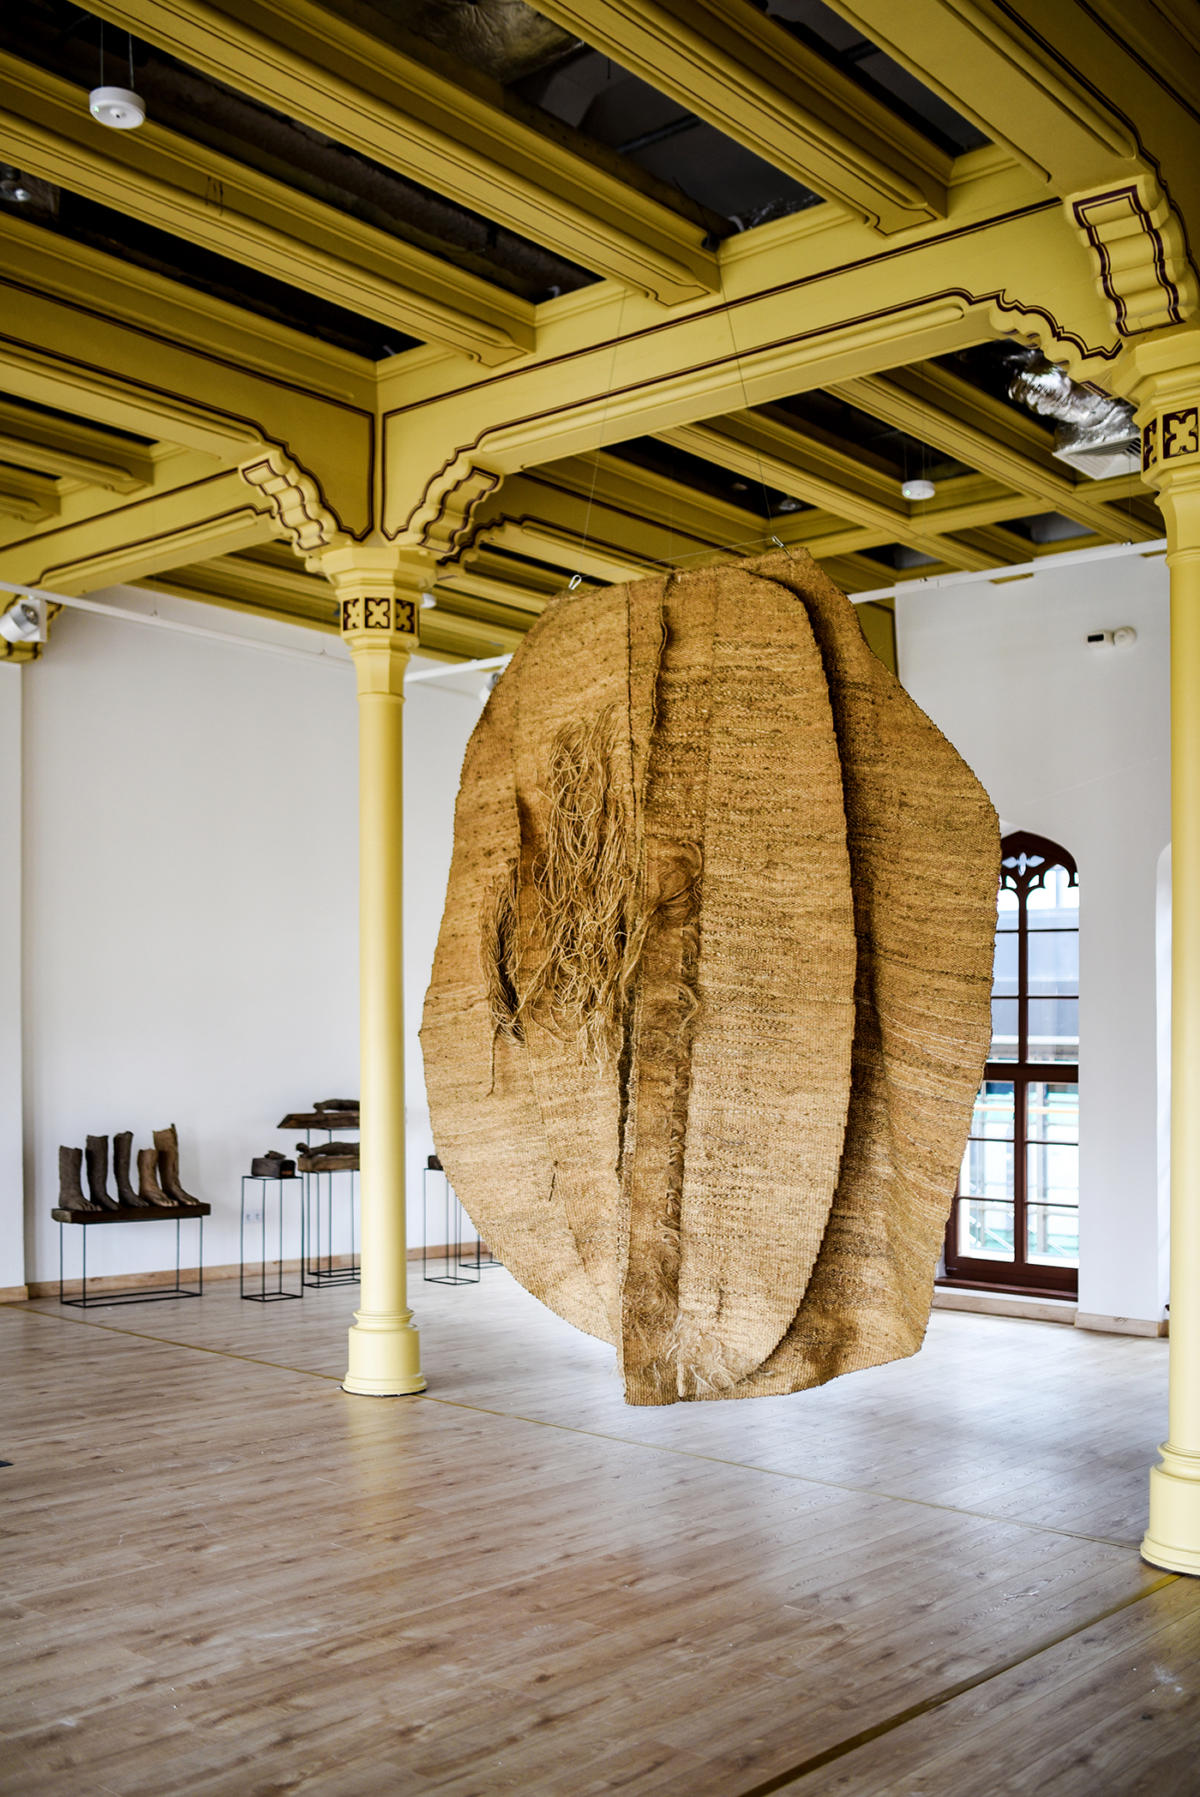 the life and times of magdalena abakanowicz Magdalena abakanowicz (born june 20, 1930, in falenty, poland) is a polish sculptor and fiber artist she is notable for her use of textiles as a sculptural medium she was a professor at.